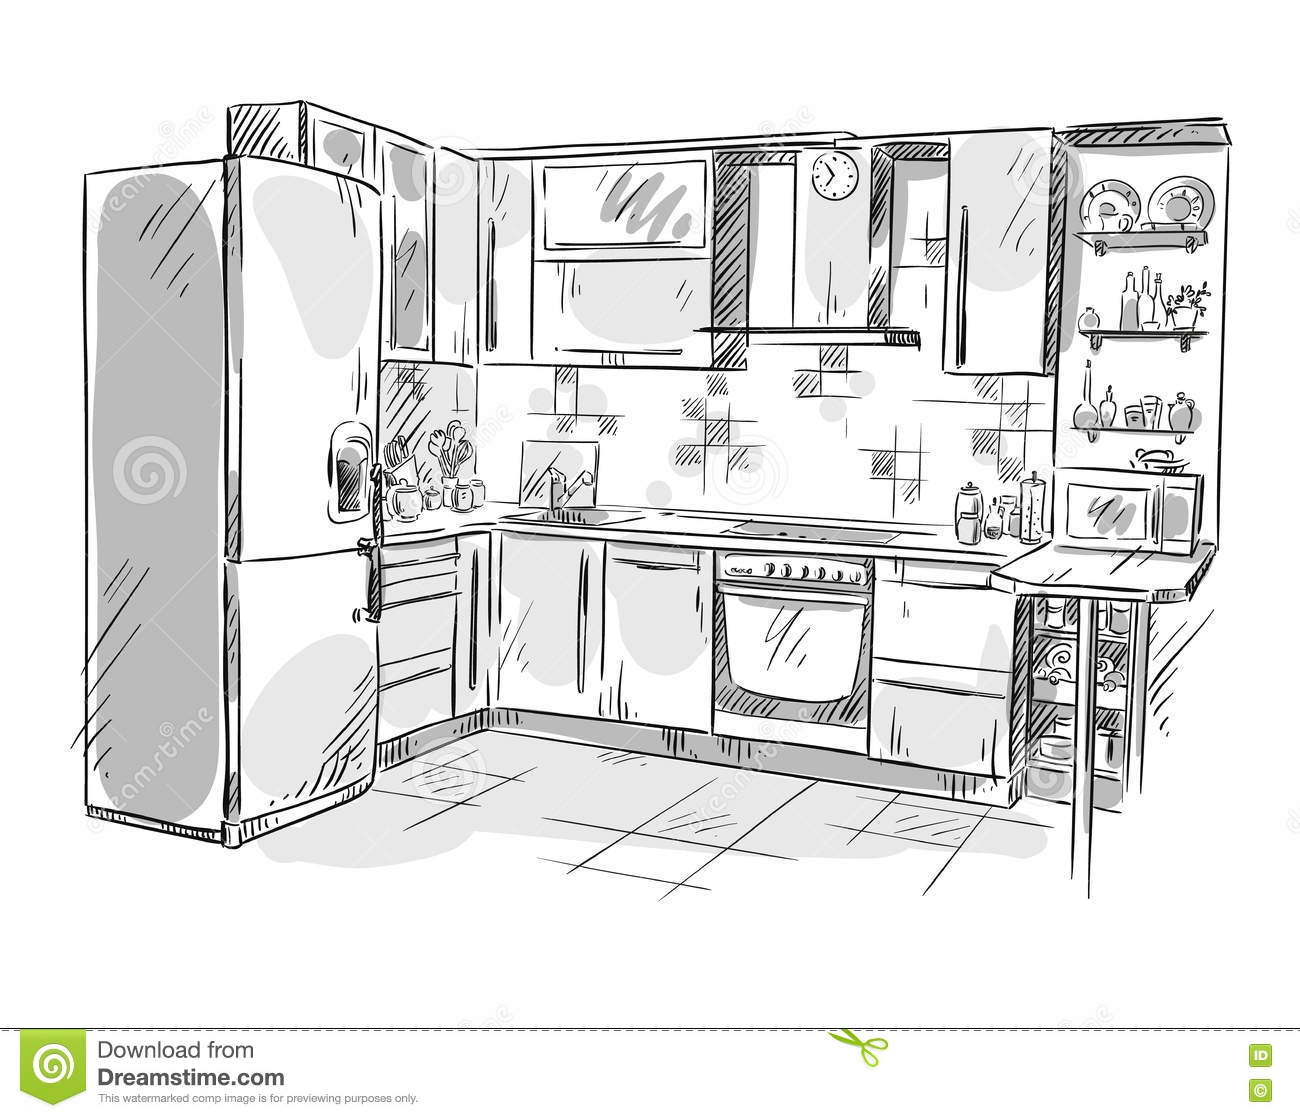 dessin int rieur de cuisine illustration de vecteur illustration de vecteur illustration du. Black Bedroom Furniture Sets. Home Design Ideas